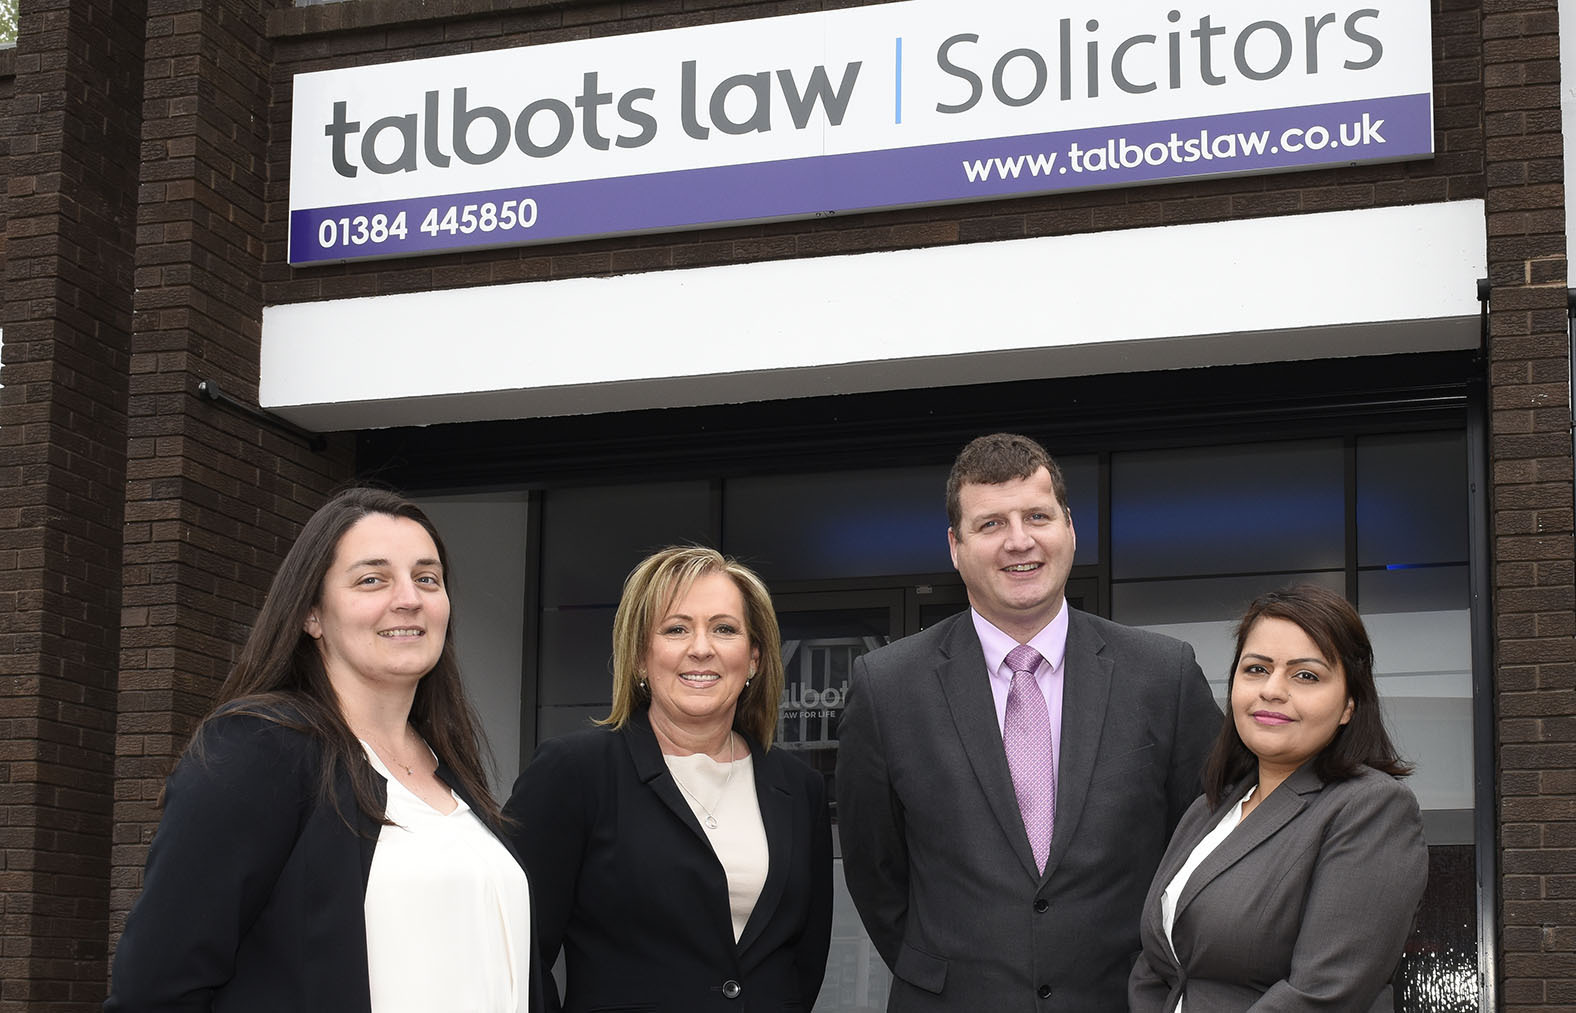 Talbots Law's Claire Cooper, Mary Mocklow, Ian Bond and Jagdip Bains.